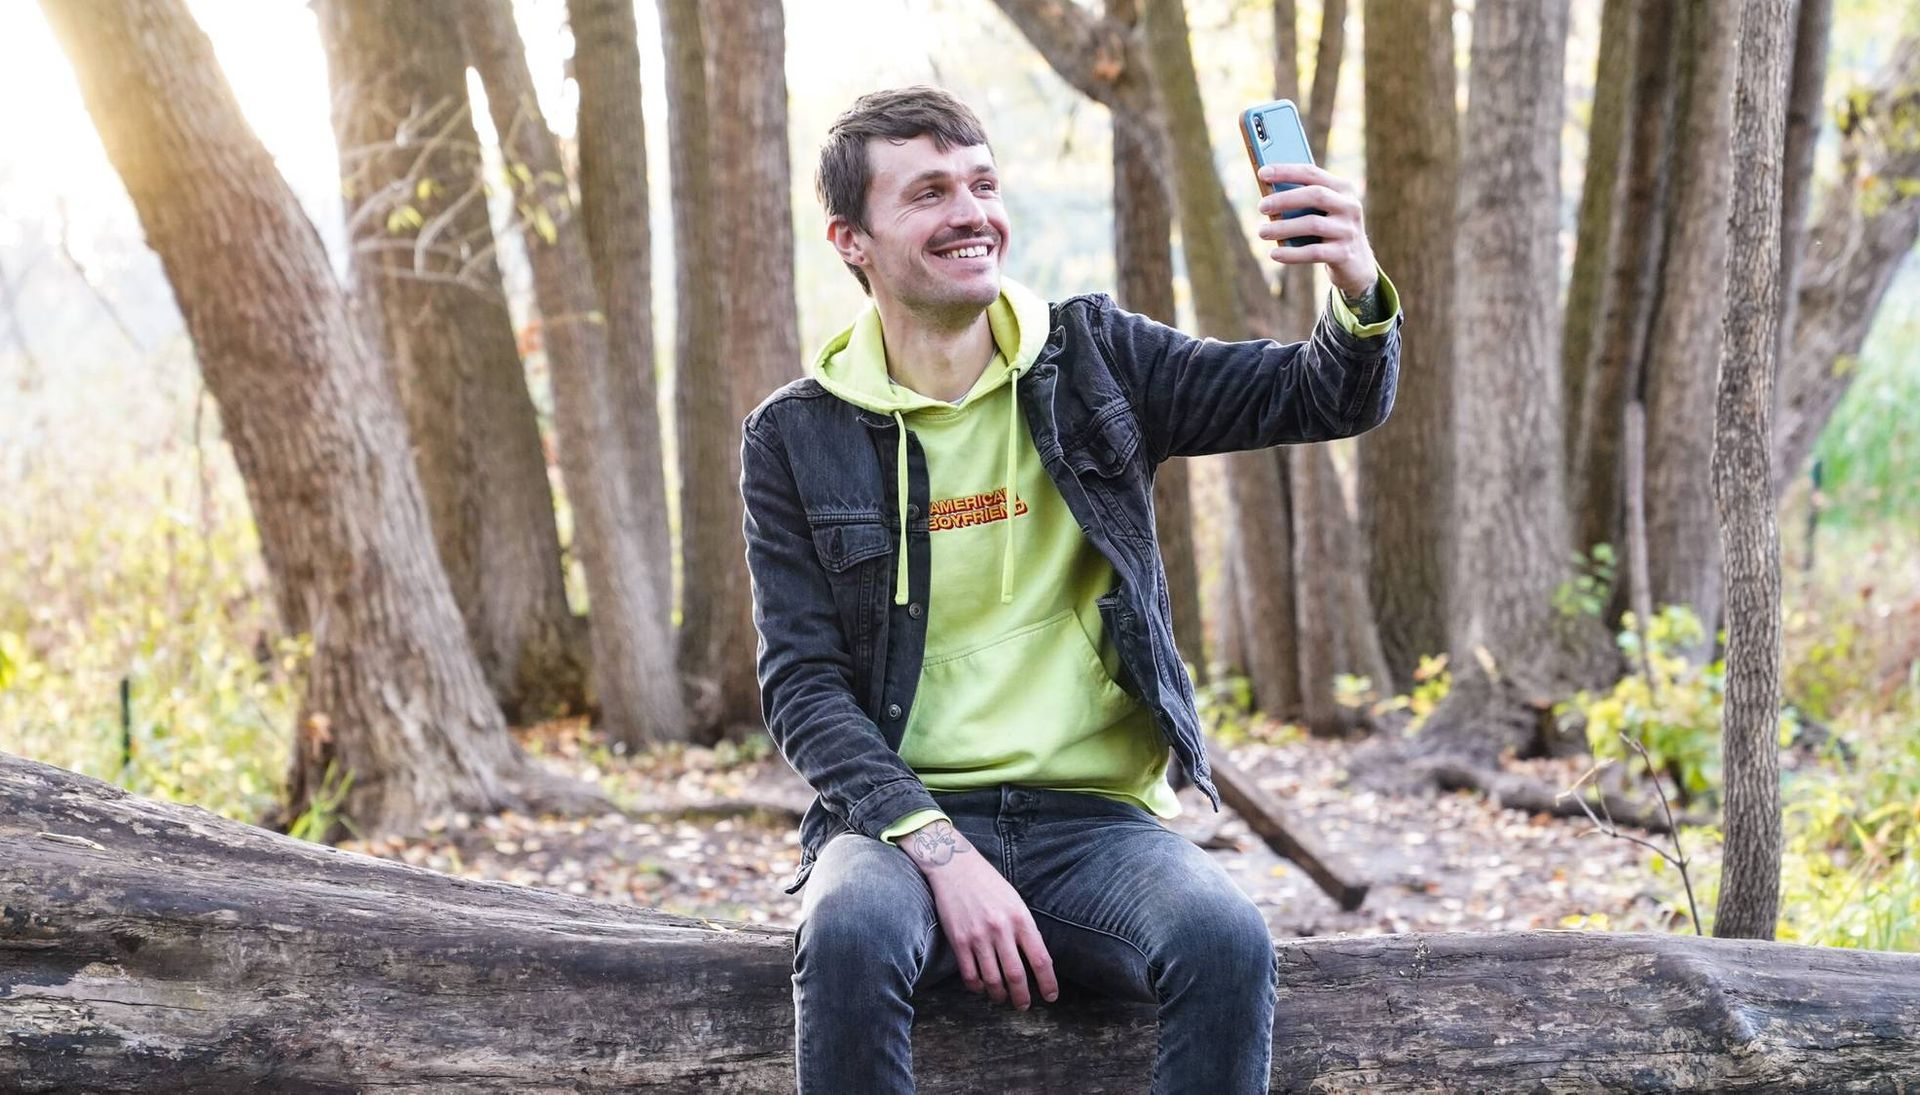 A smiling man sits on a log and holds up a smart phone to take a selfie